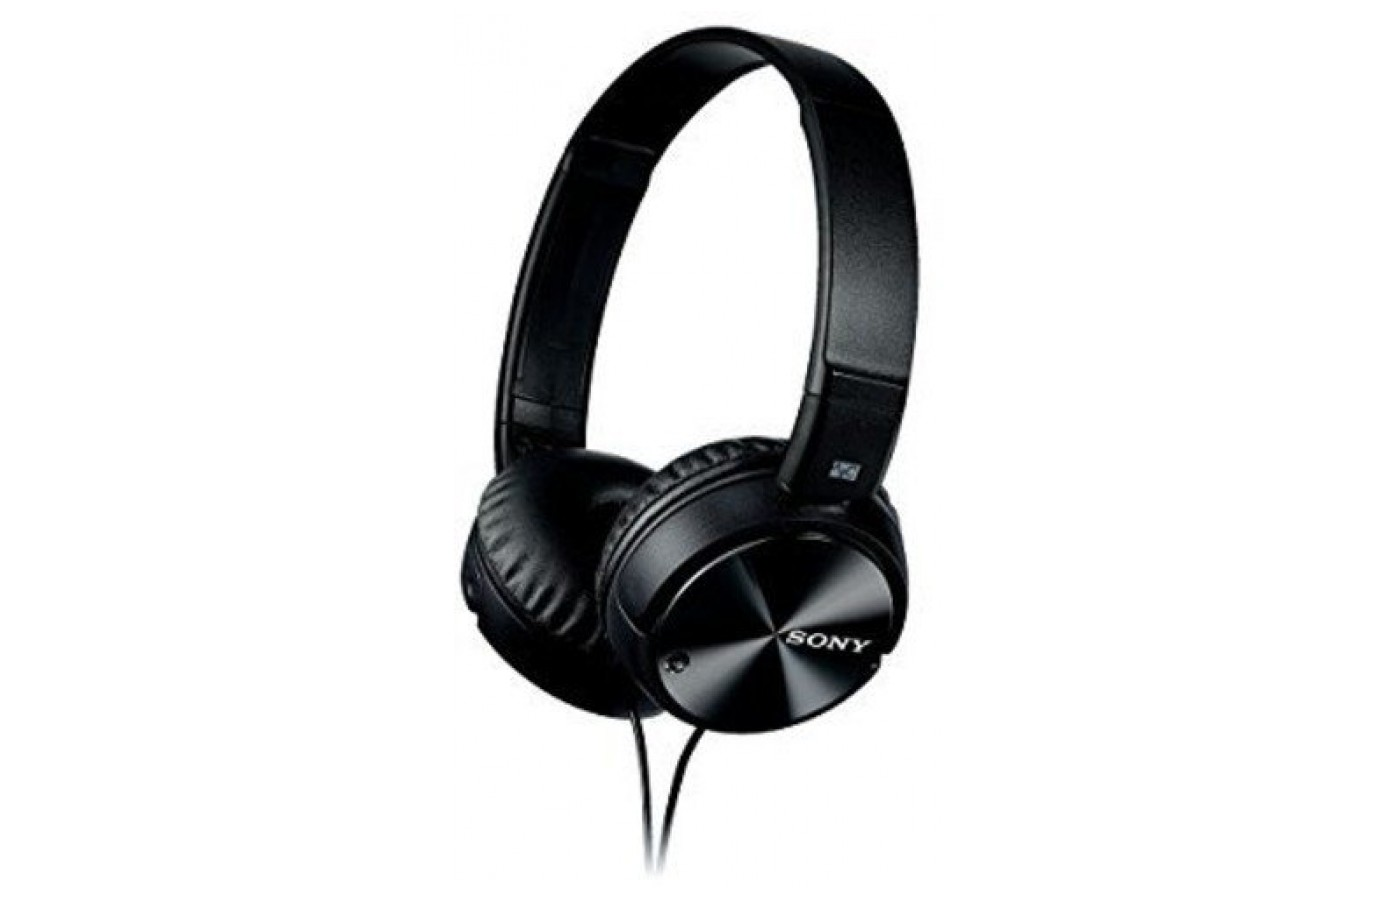 The Sony MDR-ZX110NC has a lightweight design that does not exert excessive pressure on the ears.